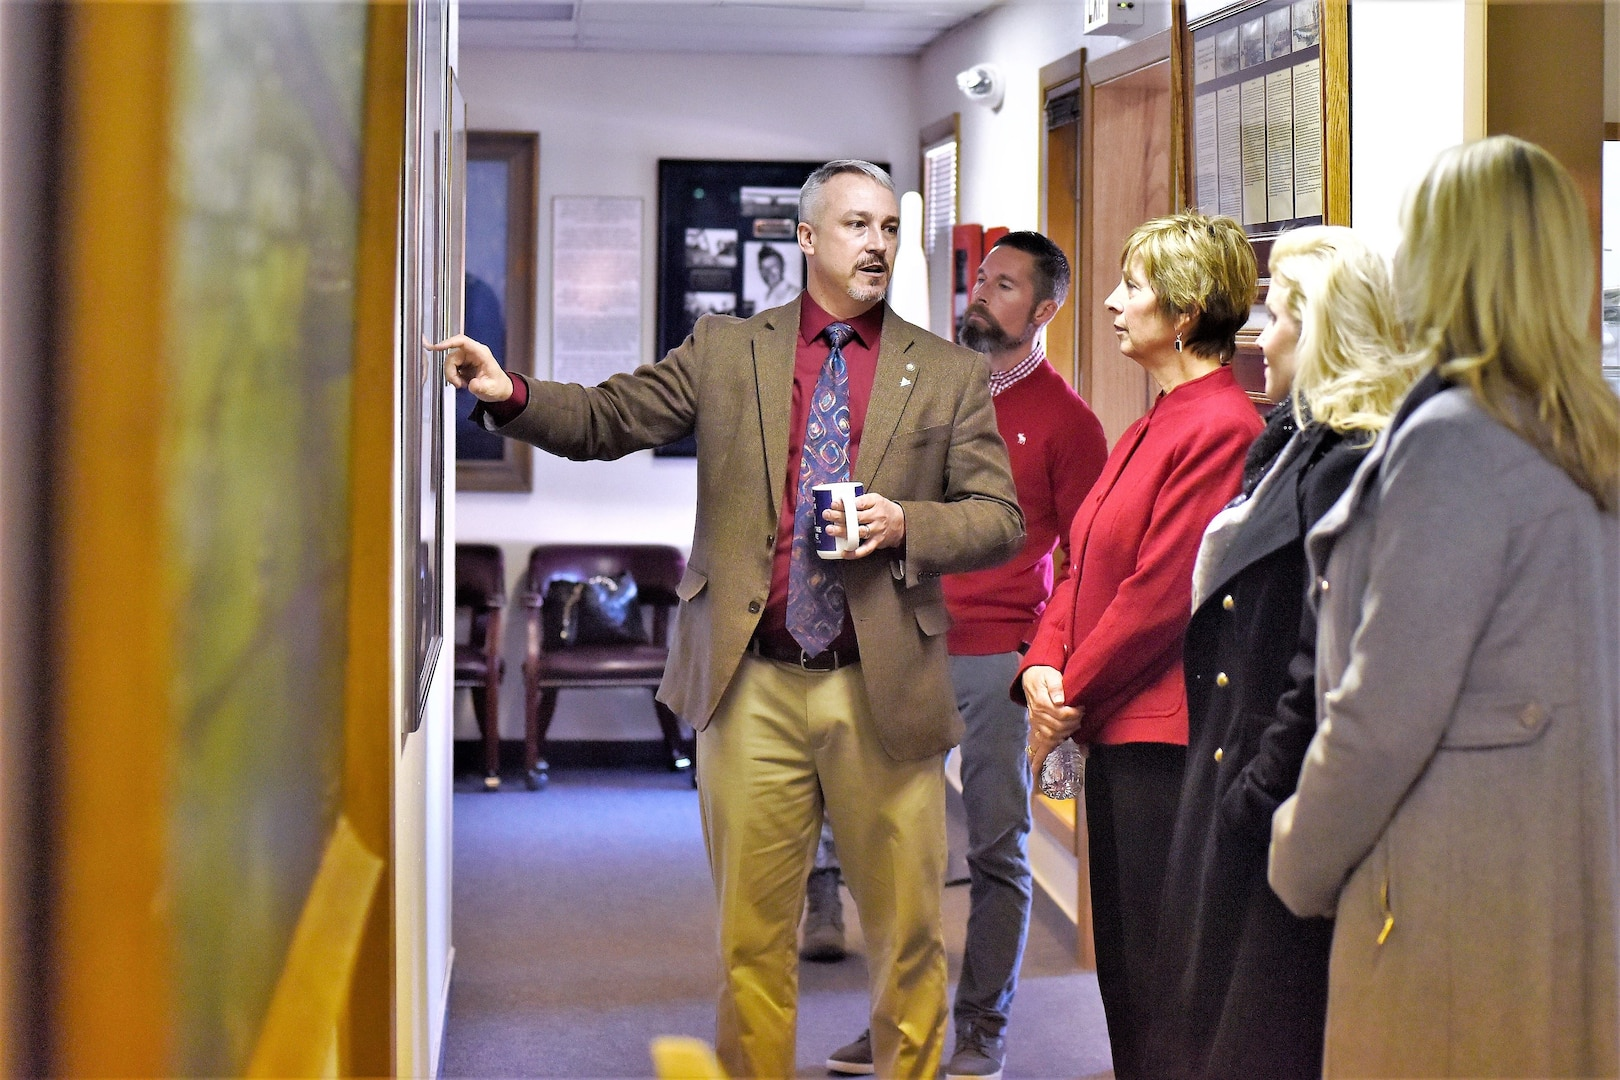 John Turnbow, director of the base museum, guides Laura Hyten (third from left) on a tour during her visit to Malmstrom Air Force Base, Montana, Jan. 17, 2018. Mrs. Hyten is married to U.S. Air Force Gen. John Hyten (not pictured), commander of U.S. Strategic Command (USSTRATCOM). While there, Gen. and Mrs. Hyten met with base leaders and airmen to thank them for their support to USSTRATCOM's deterrence mission. She also toured facilities at the base, including the resiliency center, maintenance bay and community center. (U.S. Air Force photo by Kiersten McCutchan)